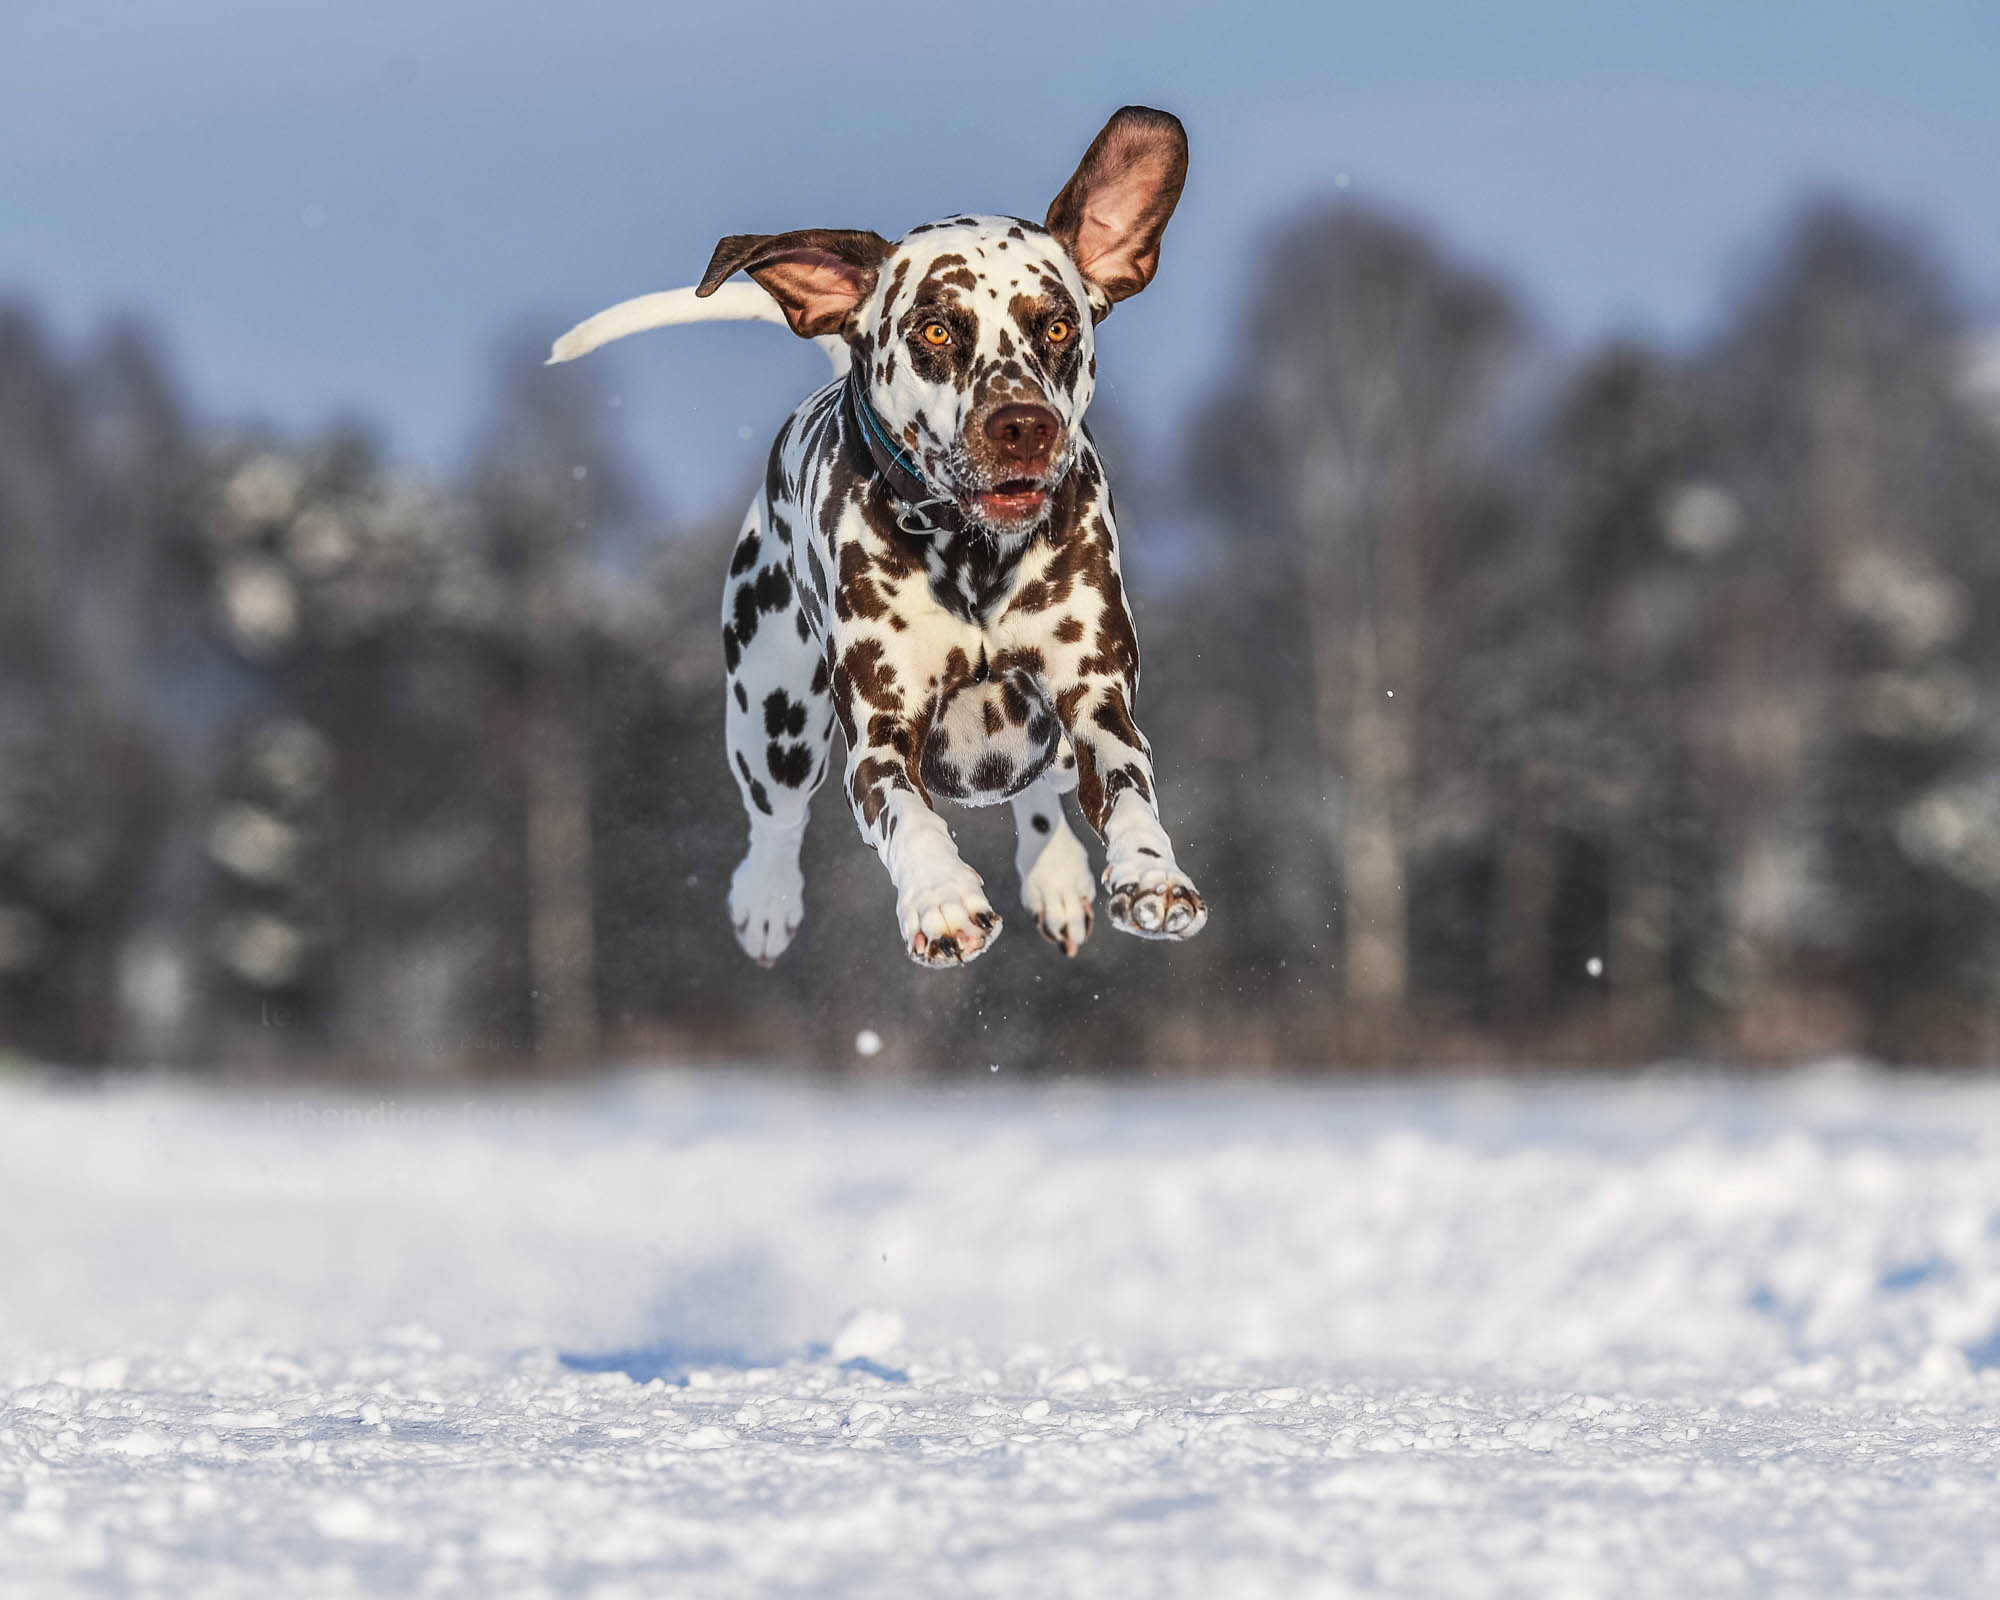 A Dalmatian dog jumping in the snow